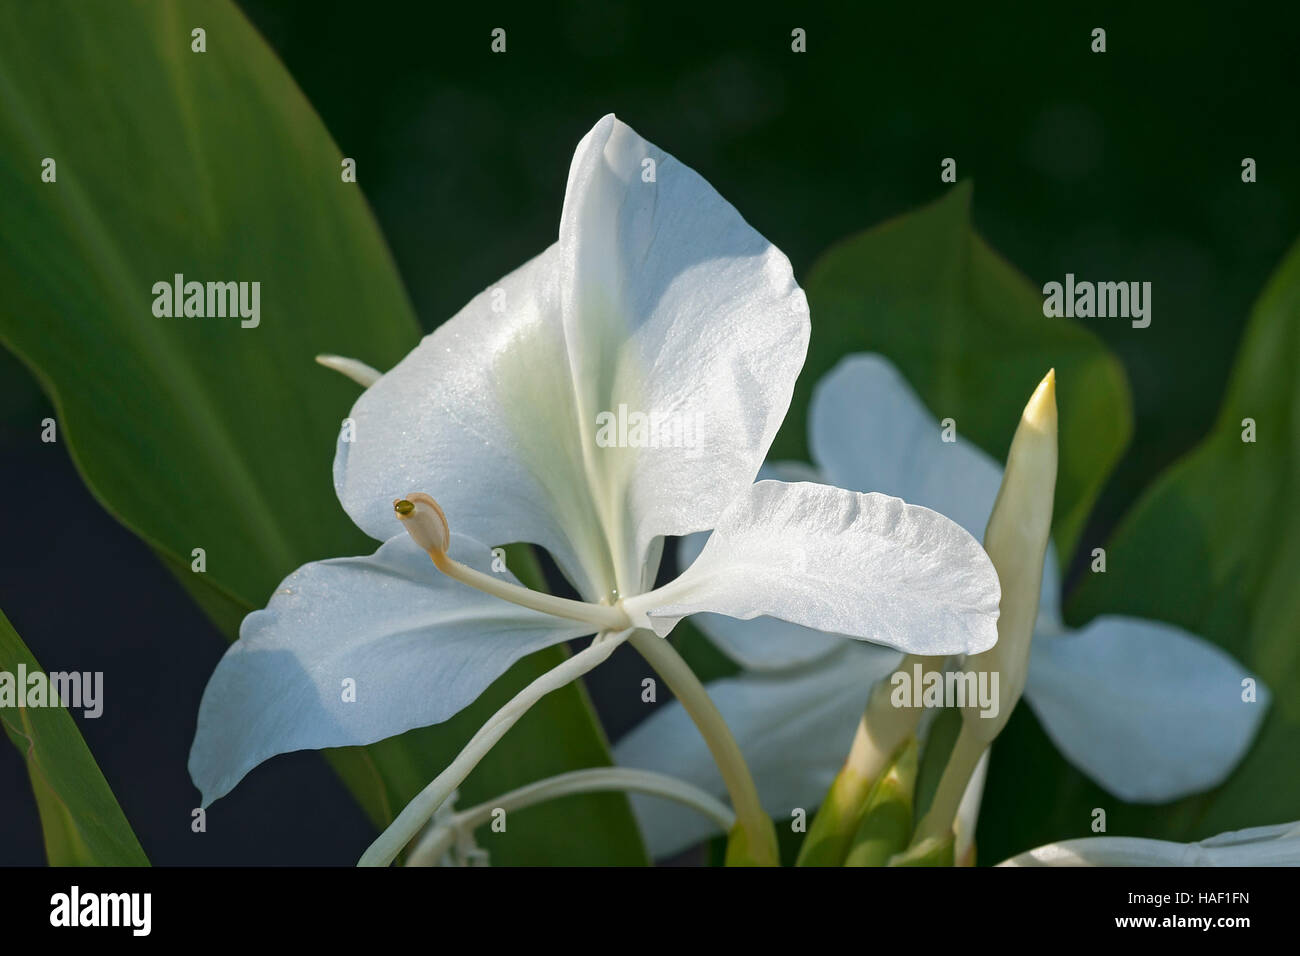 White ginger lily flowers stock photo 126949641 alamy white ginger lily flowers mightylinksfo